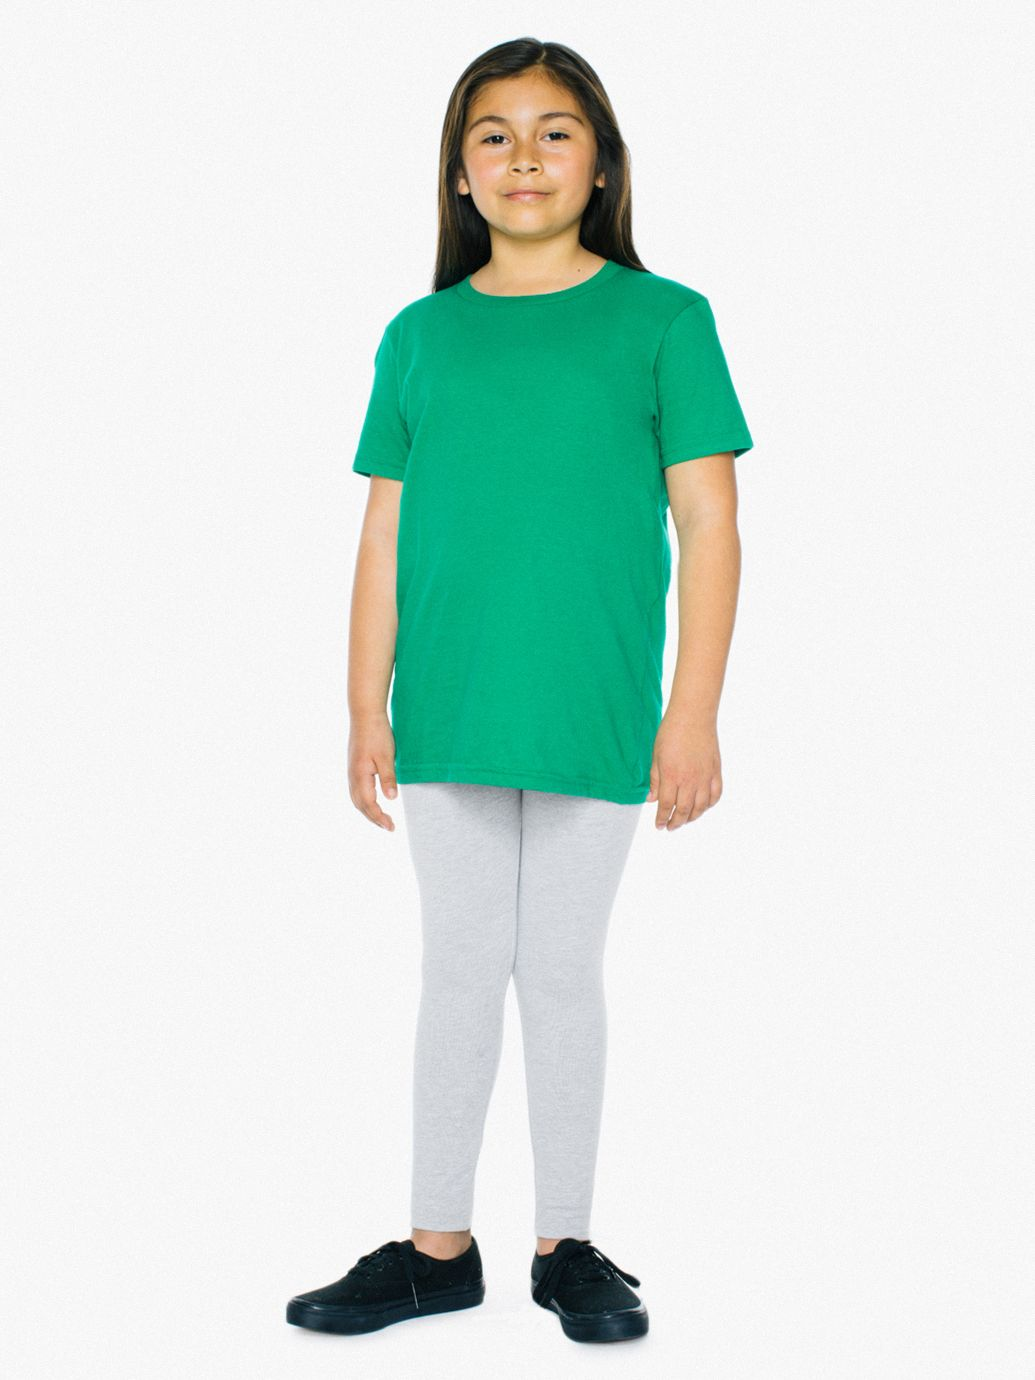 Cotton Spandex Youth Leggings by American Apparel